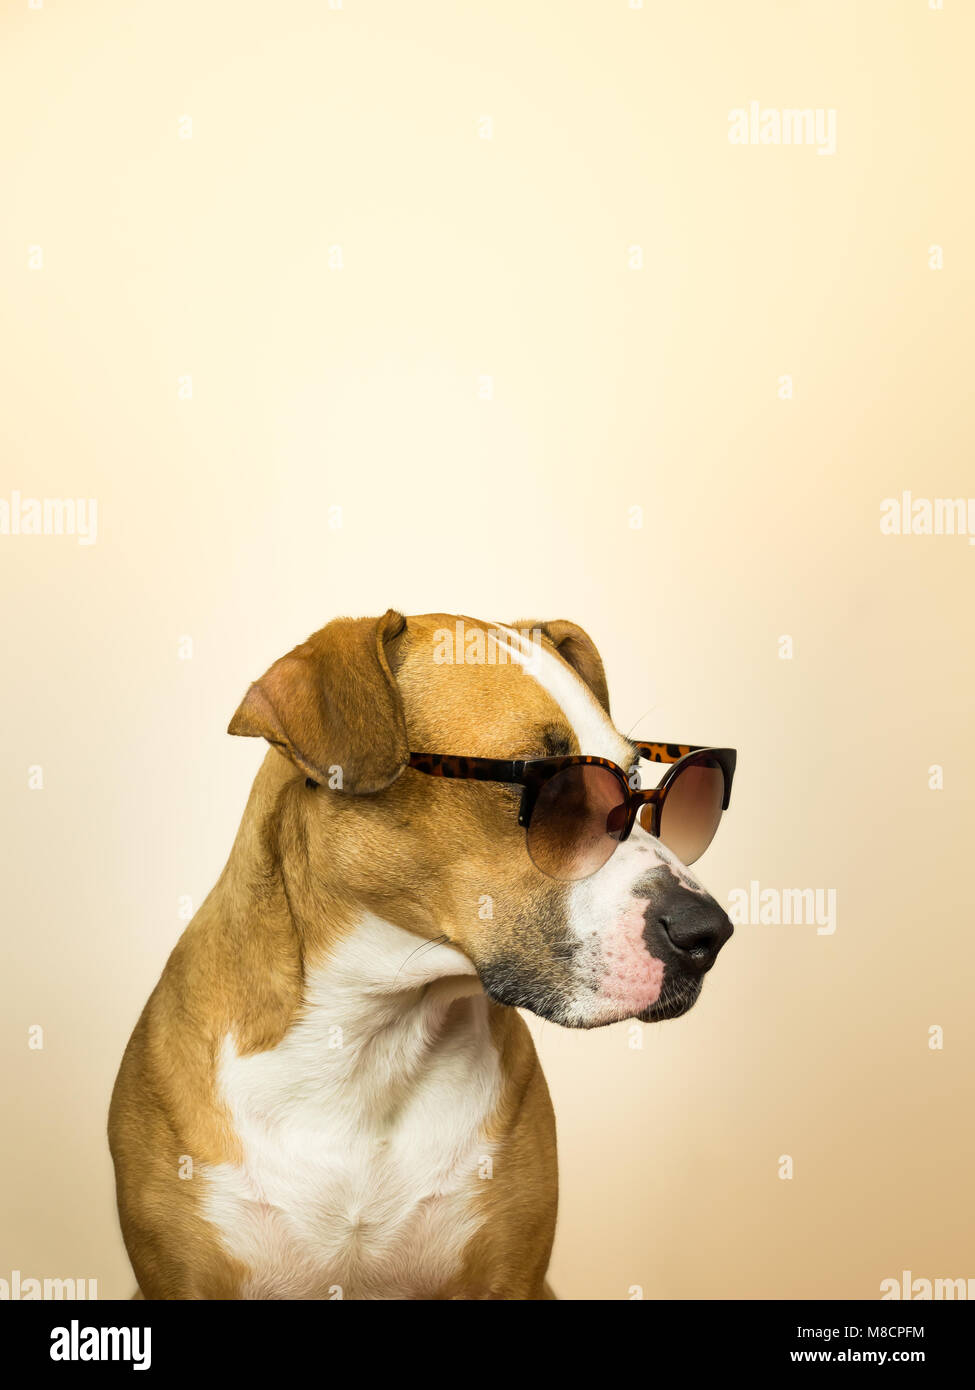 Funny staffordshire terrier dog in sunglasses. Studio photo of pitbull terrier puppy in summer shades posing in - Stock Image